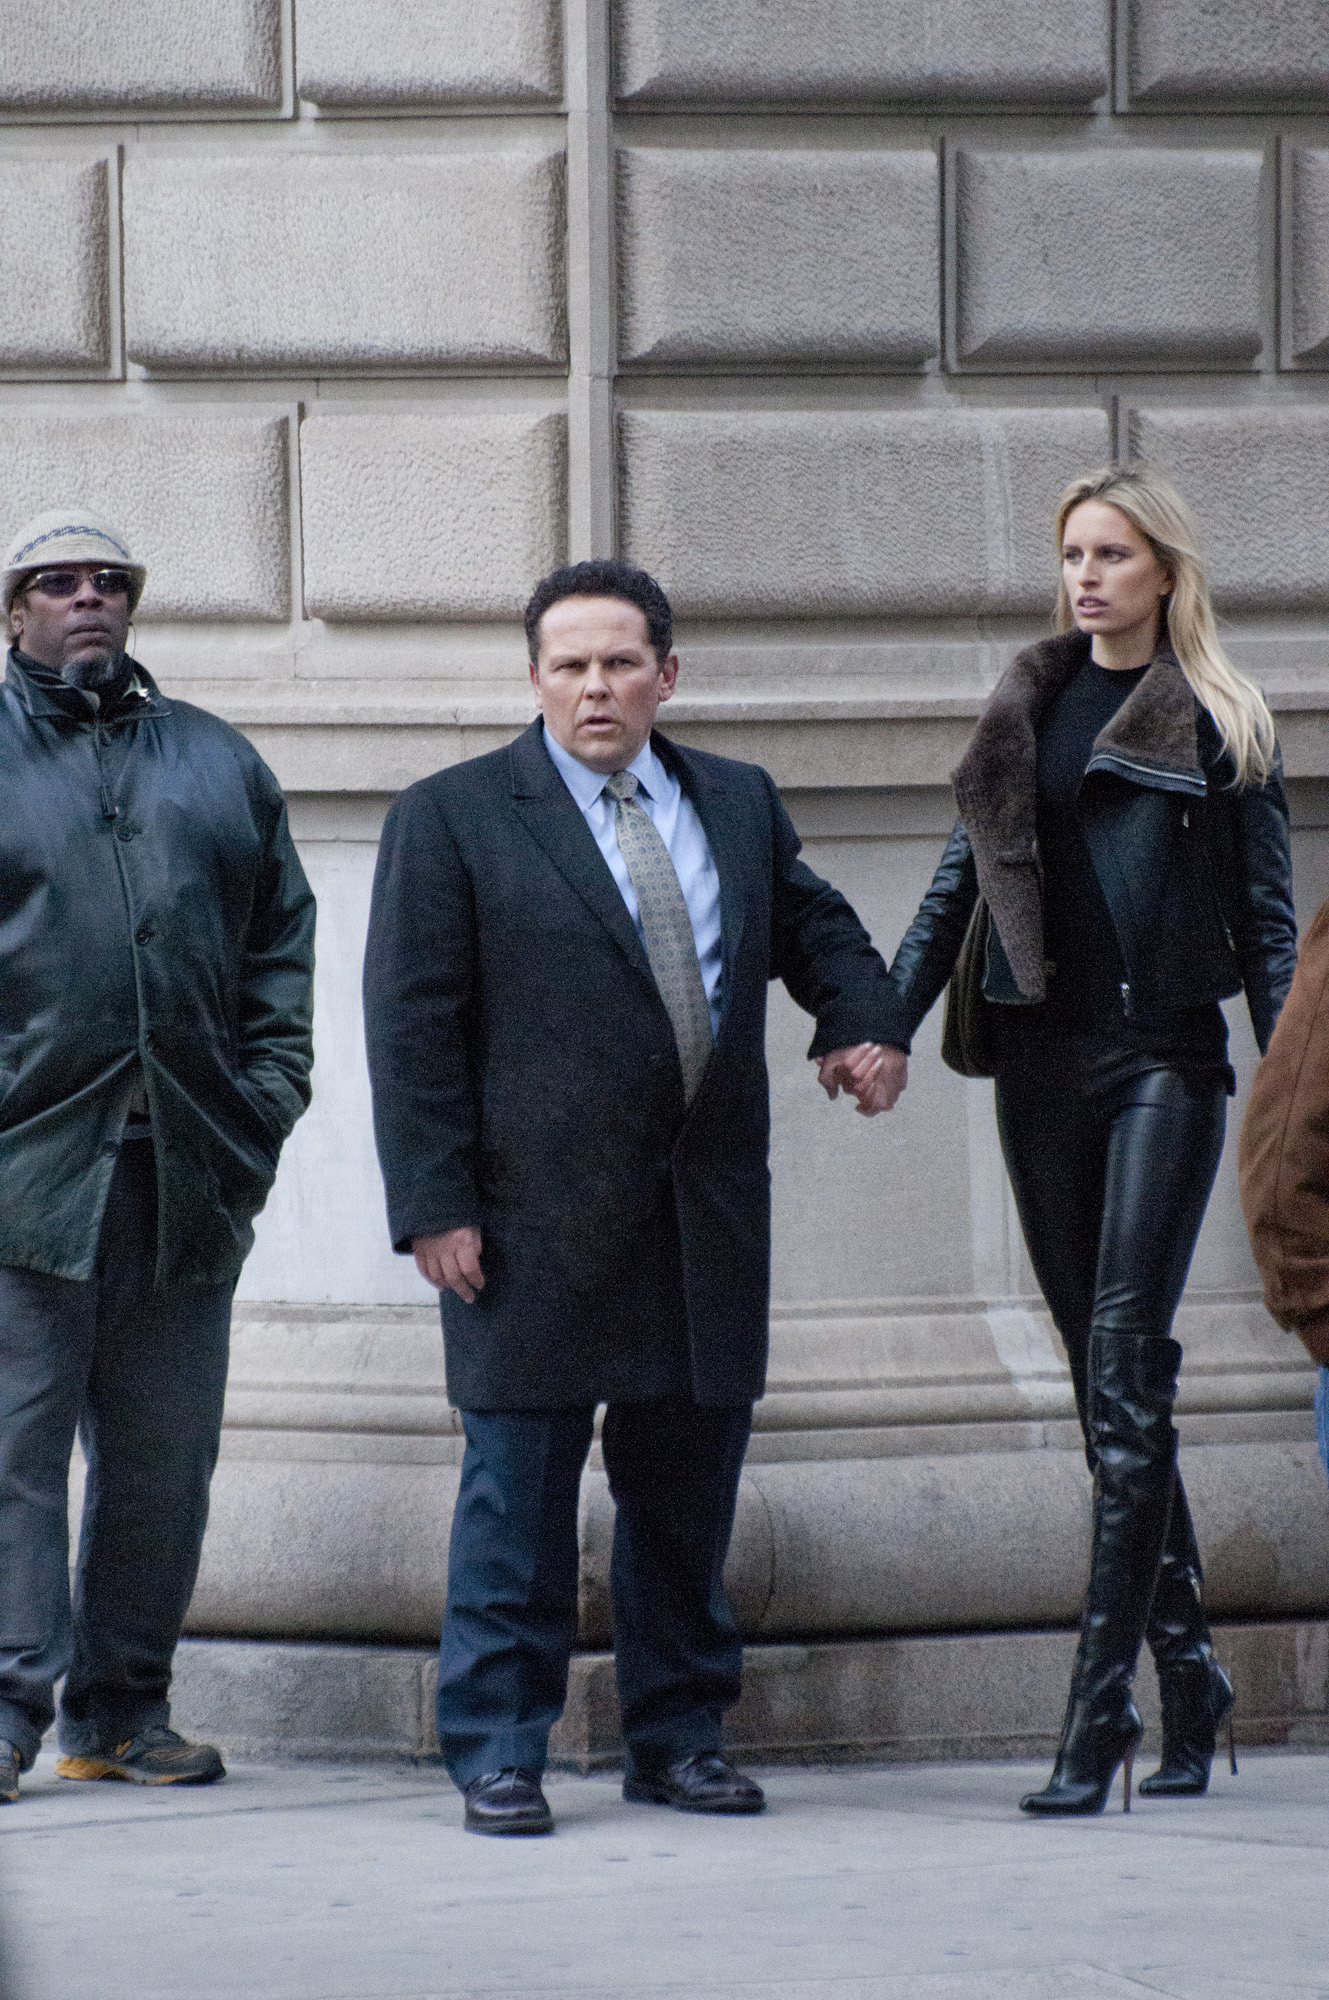 Detective Fusco with Karolina Kurkova